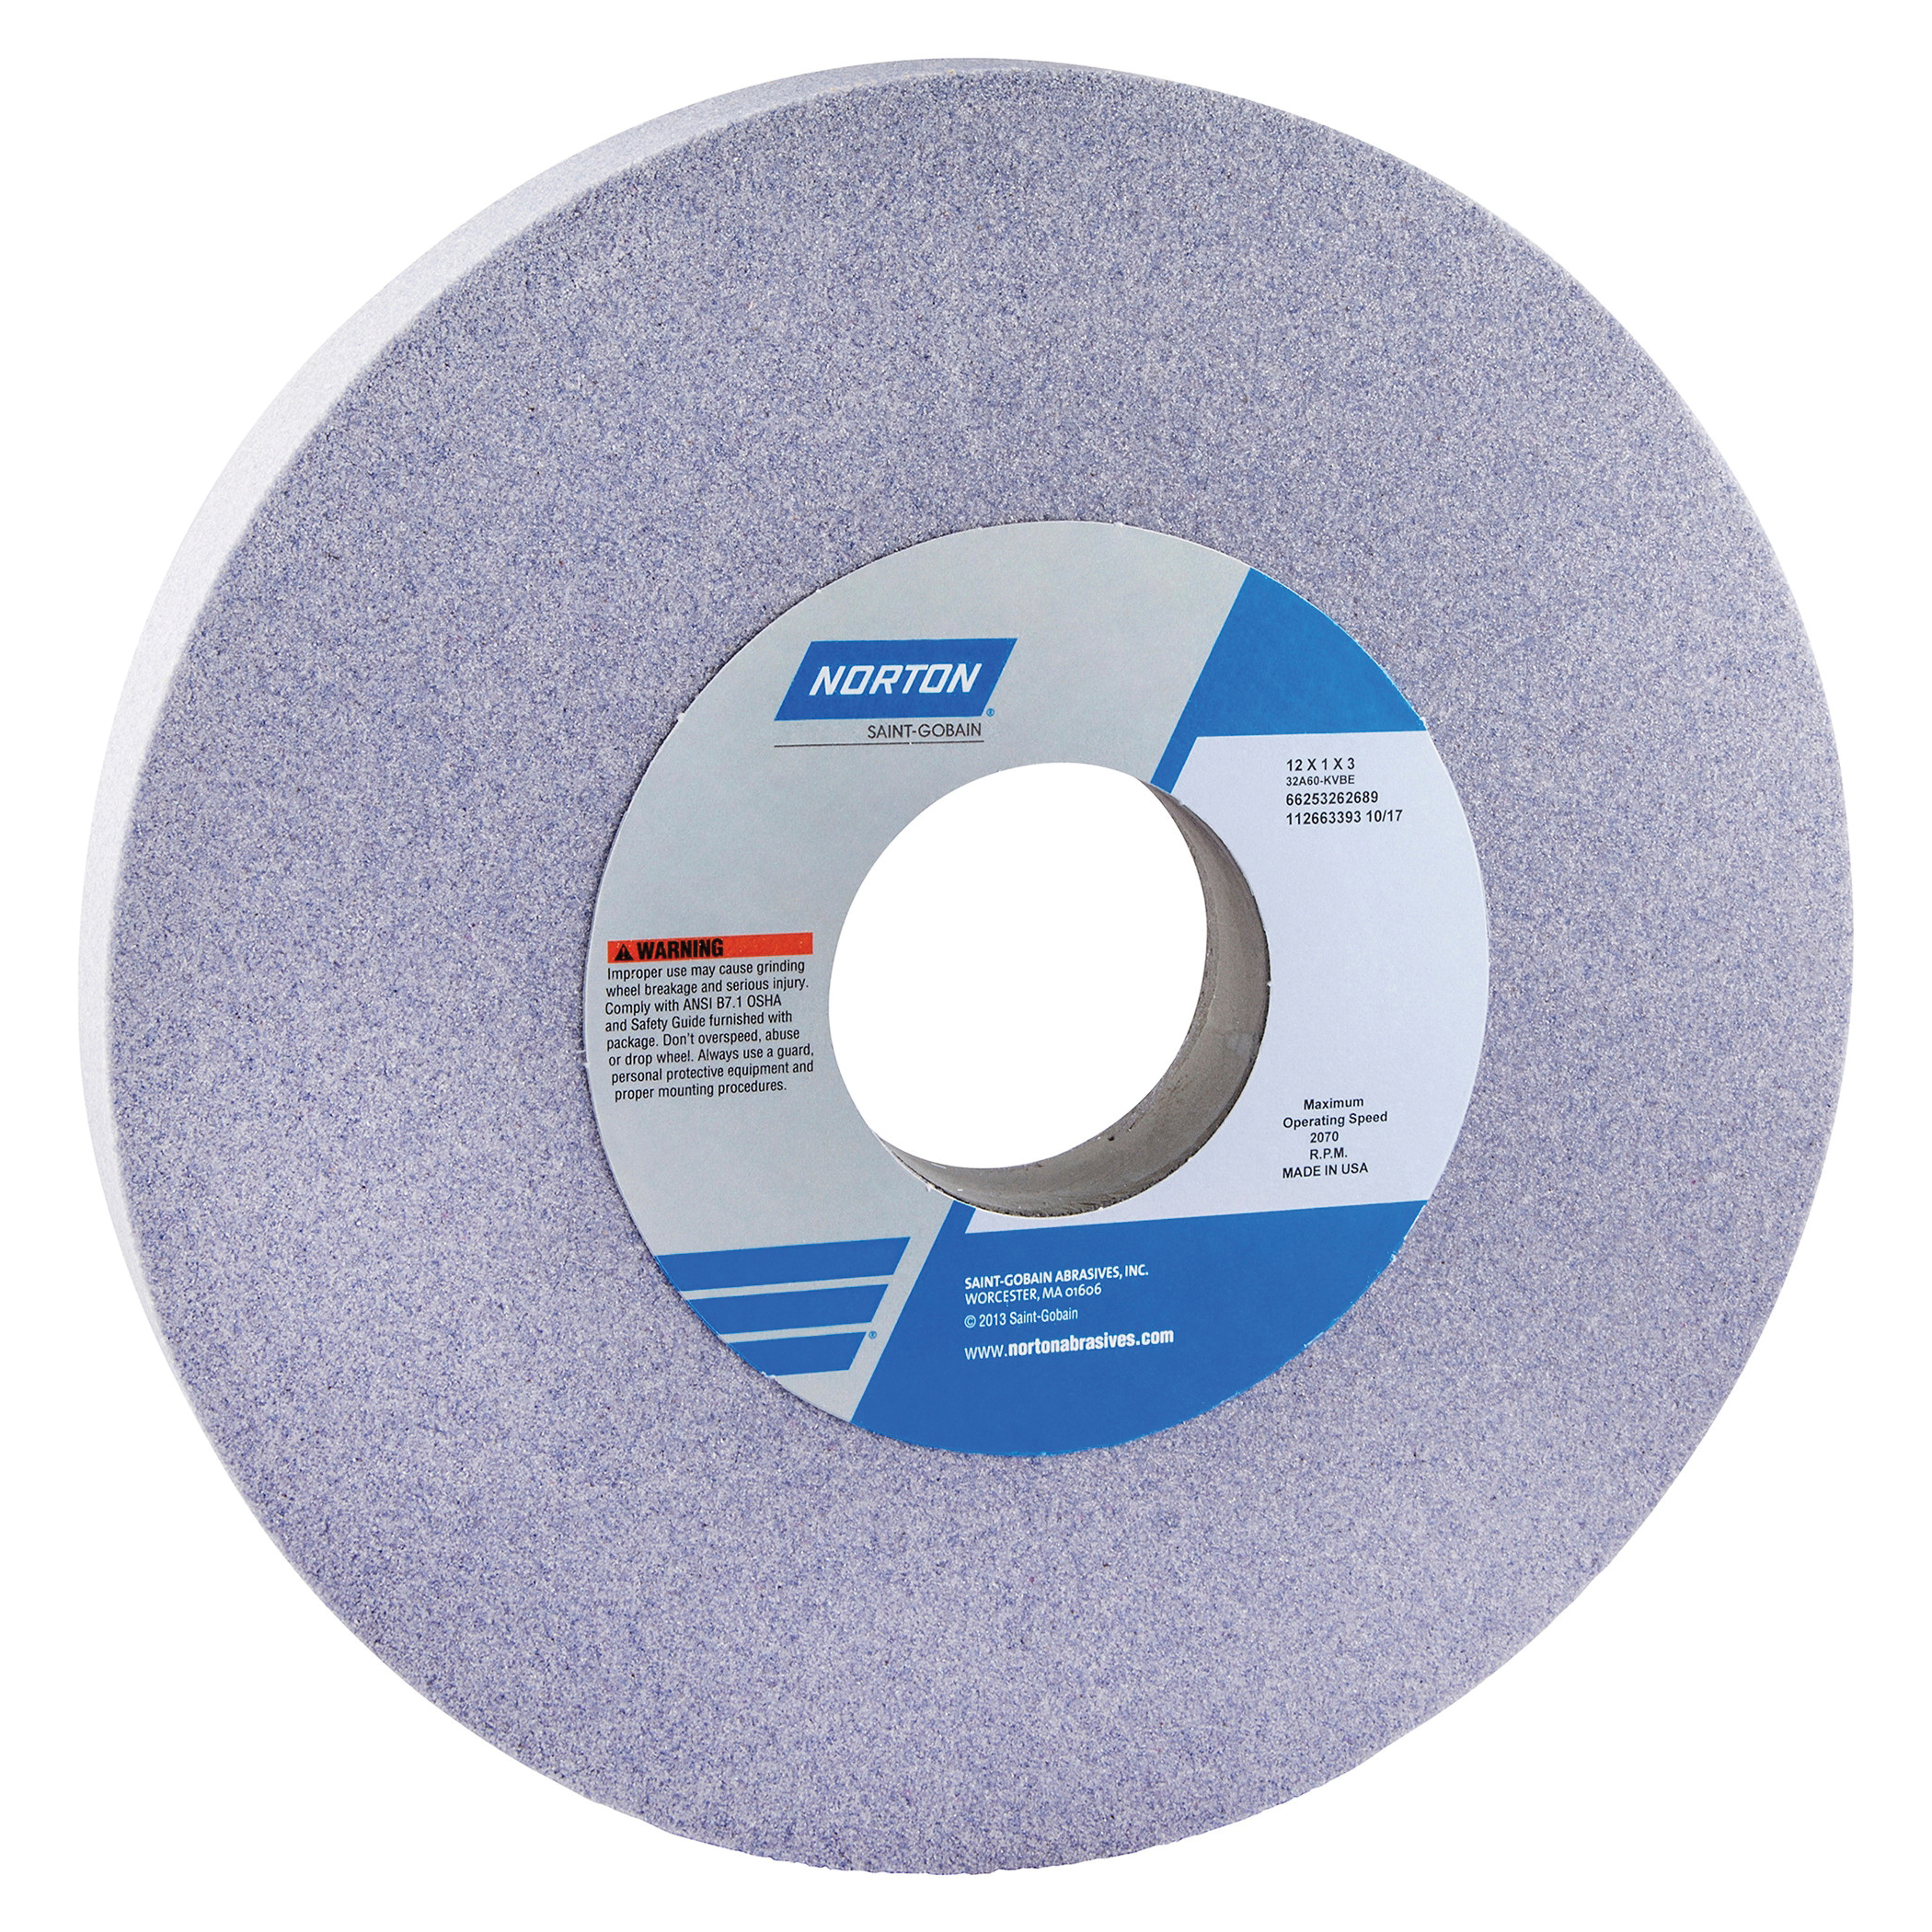 Norton® 66253262567 32A Straight Toolroom Wheel, 12 in Dia x 1 in THK, 3 in Center Hole, 46 Grit, Aluminum Oxide Abrasive